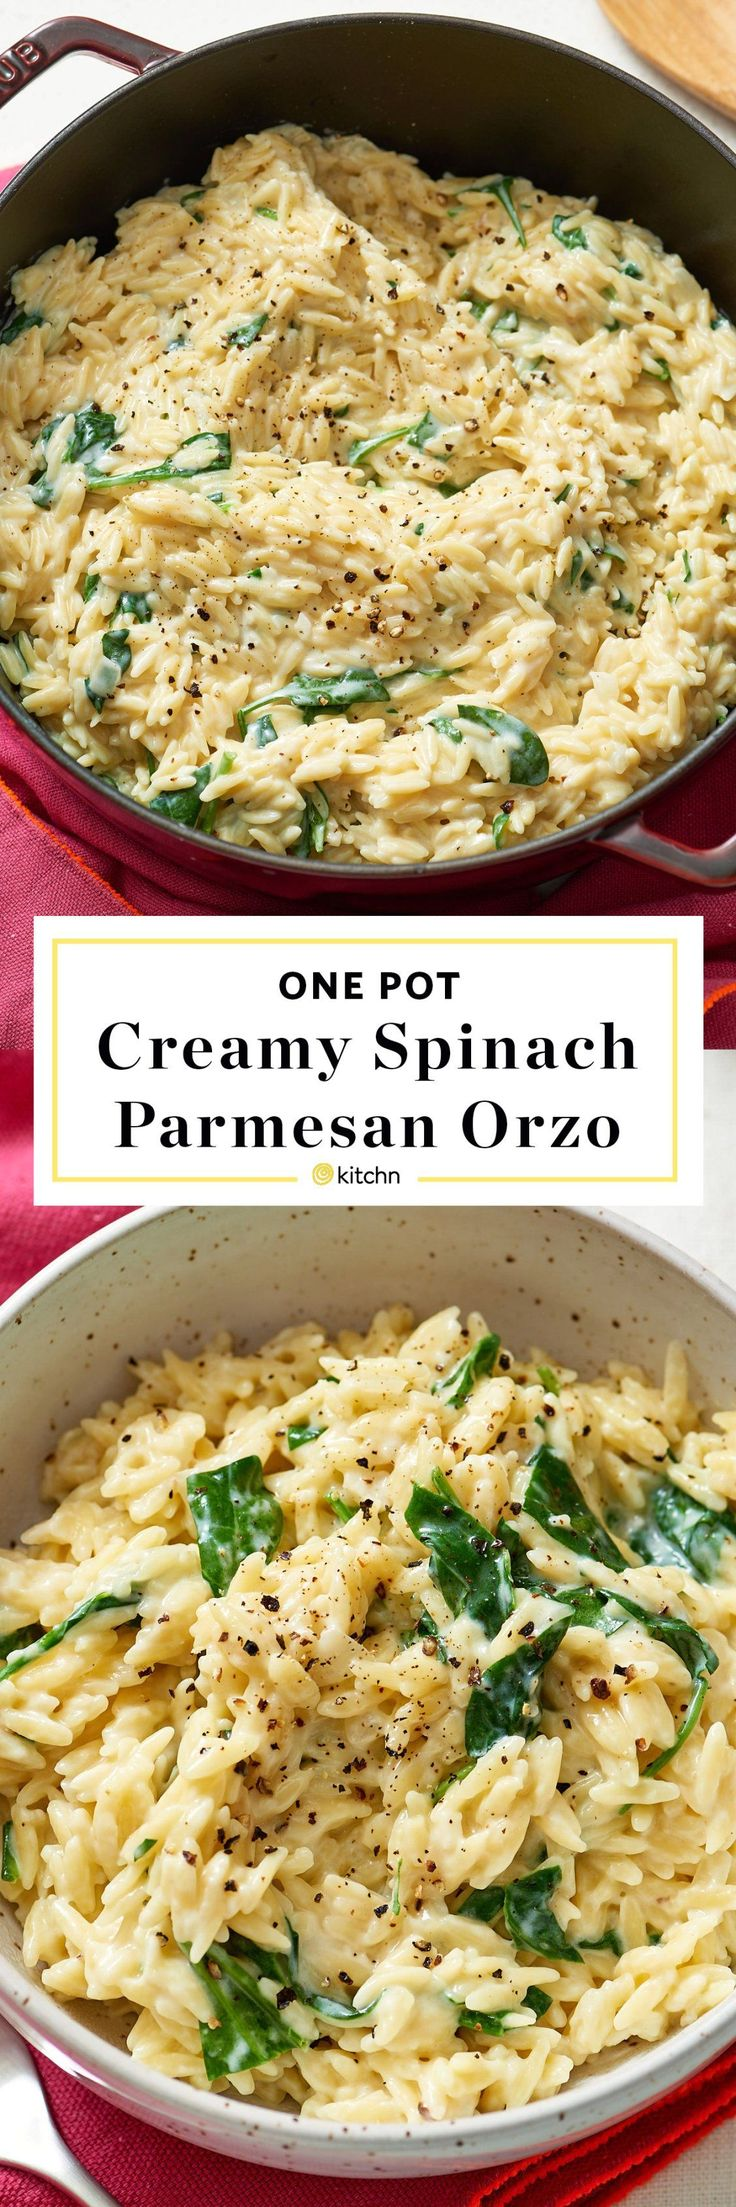 One Pot, Pan, or Dish Creamy Spinach, Parmesan & Orzo Pasta Recipe. Need recipes and ideas for easy weeknight dinners and meals? Vegetarian and perfect for a side dish or a main dish. To make this modern comfort food, you'll need: olive oil, onion, garlic, orzo, chicken or veggie/vegetable broth, milk, baby spinach or other greens, parm cheese. #vegetarianrecipesdinner